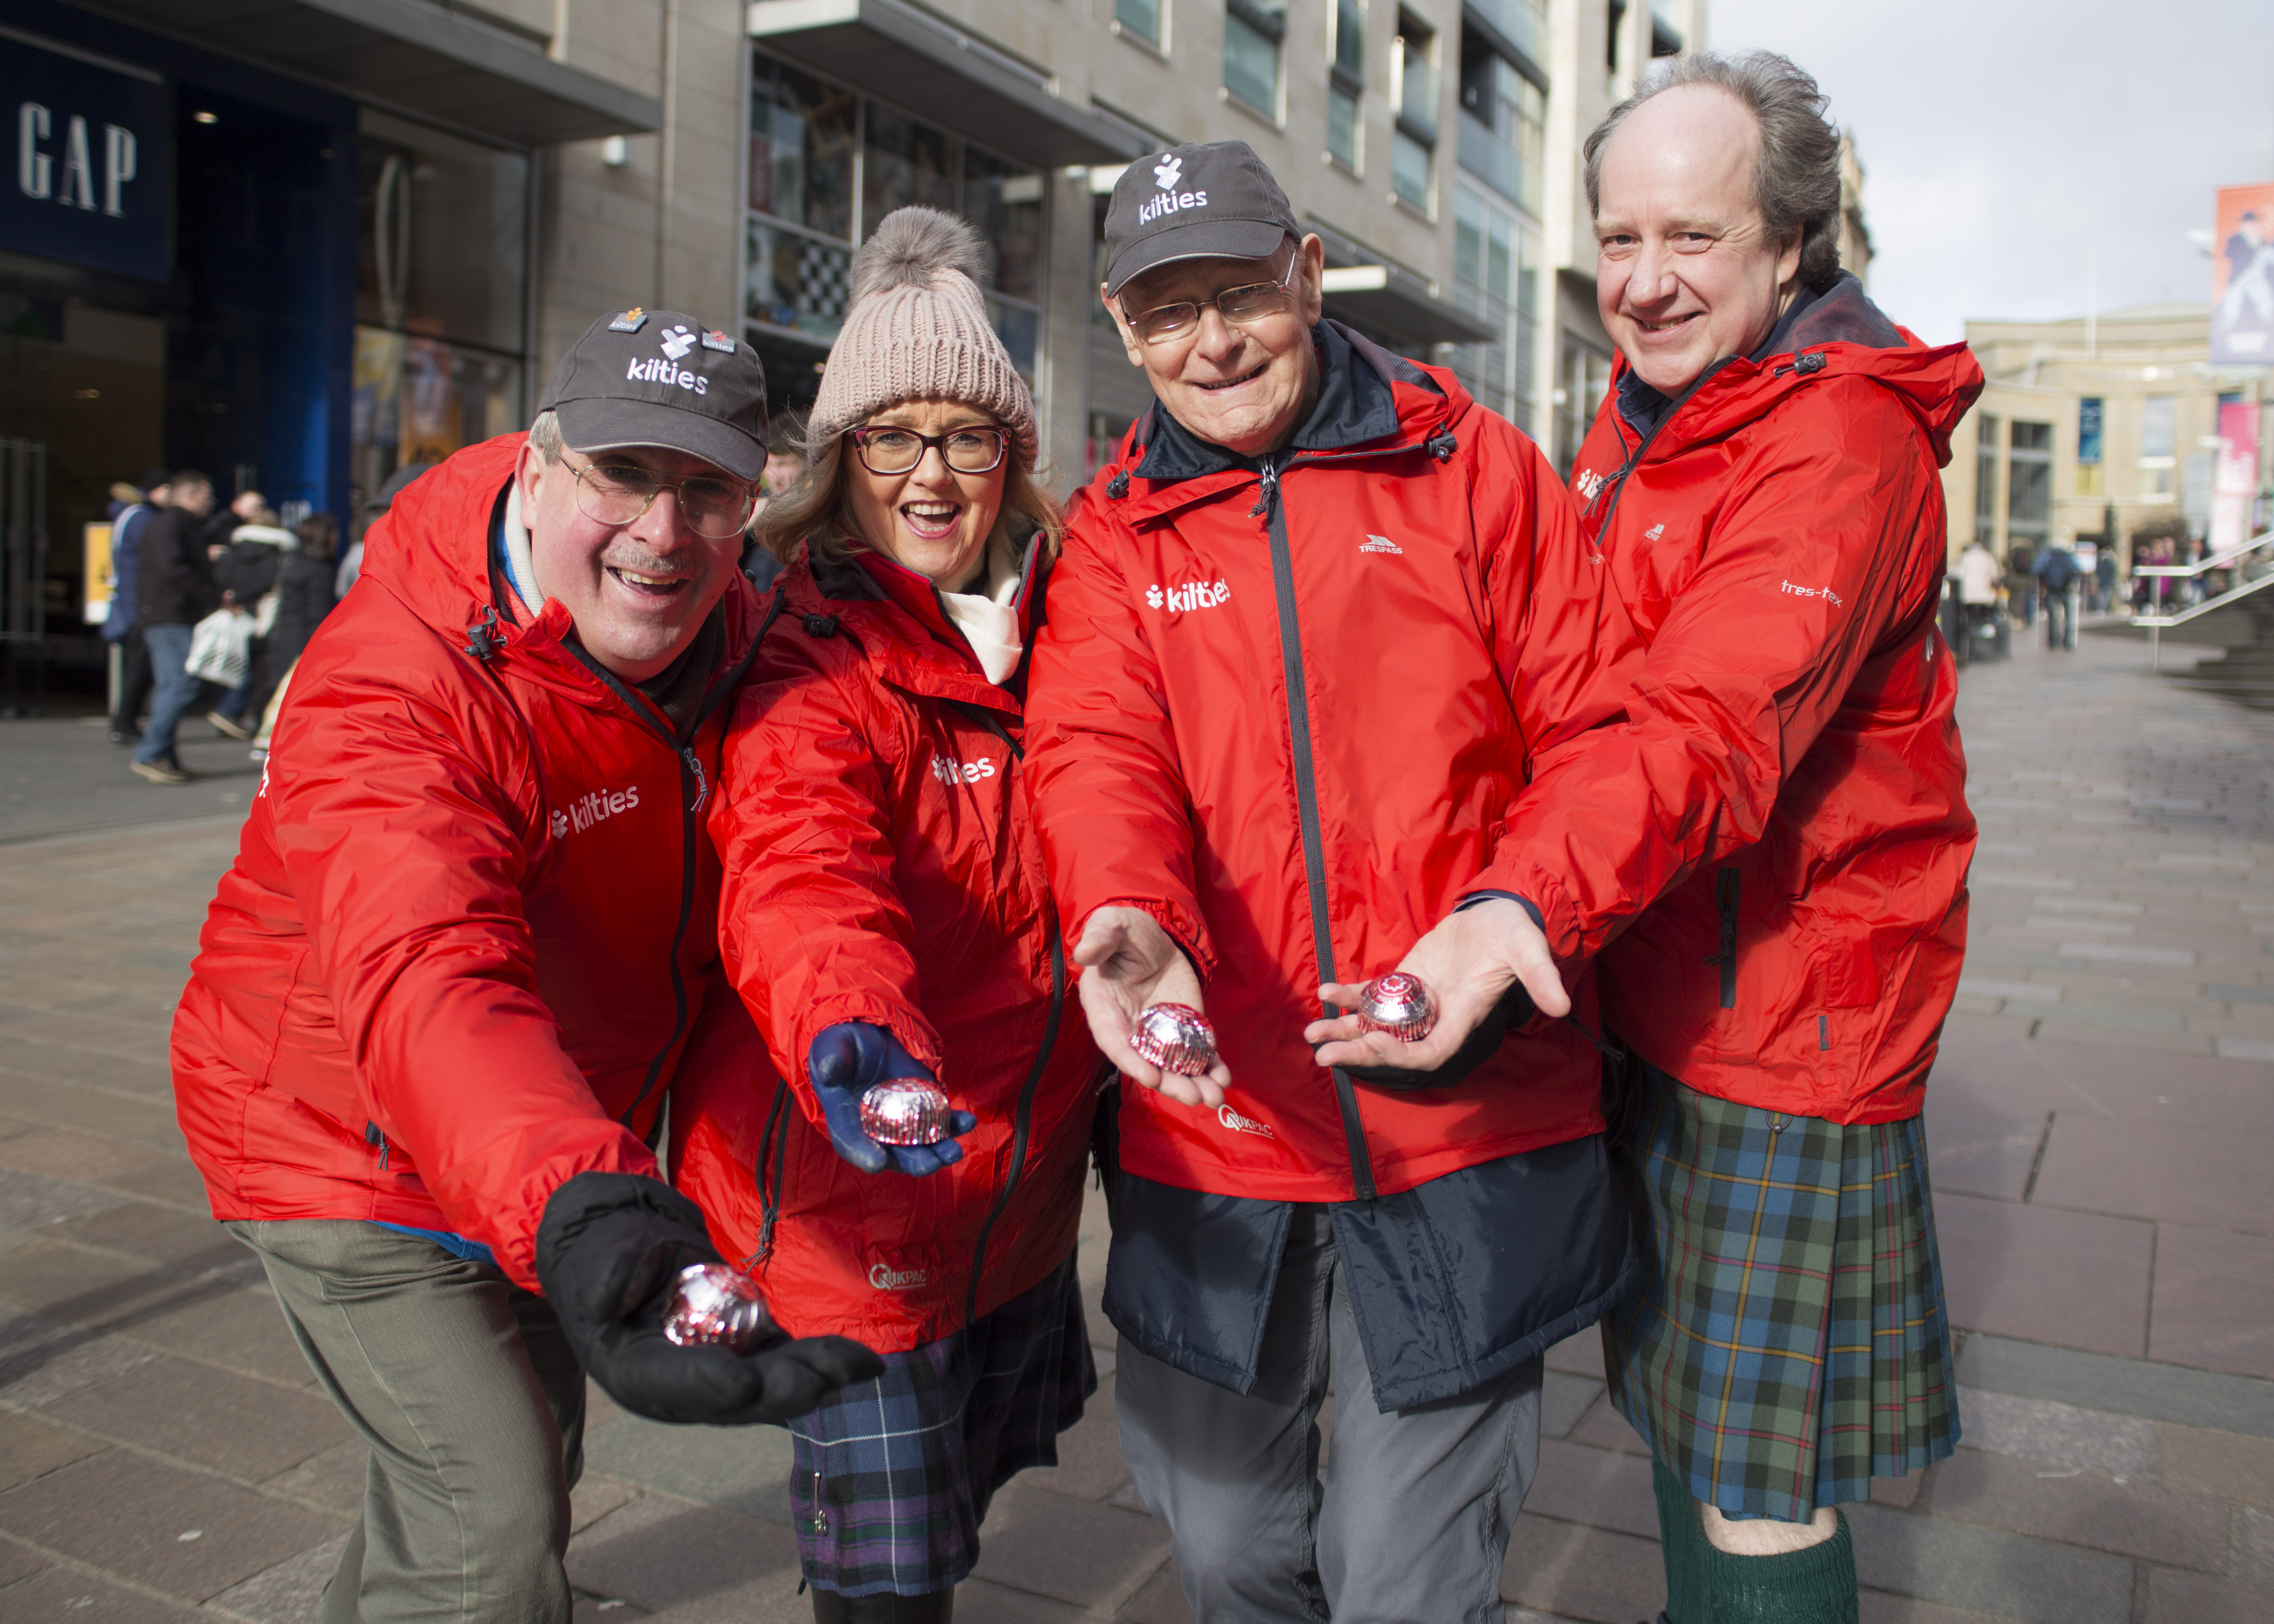 Media release: Kilties spread kindness with treat from Tunnock's